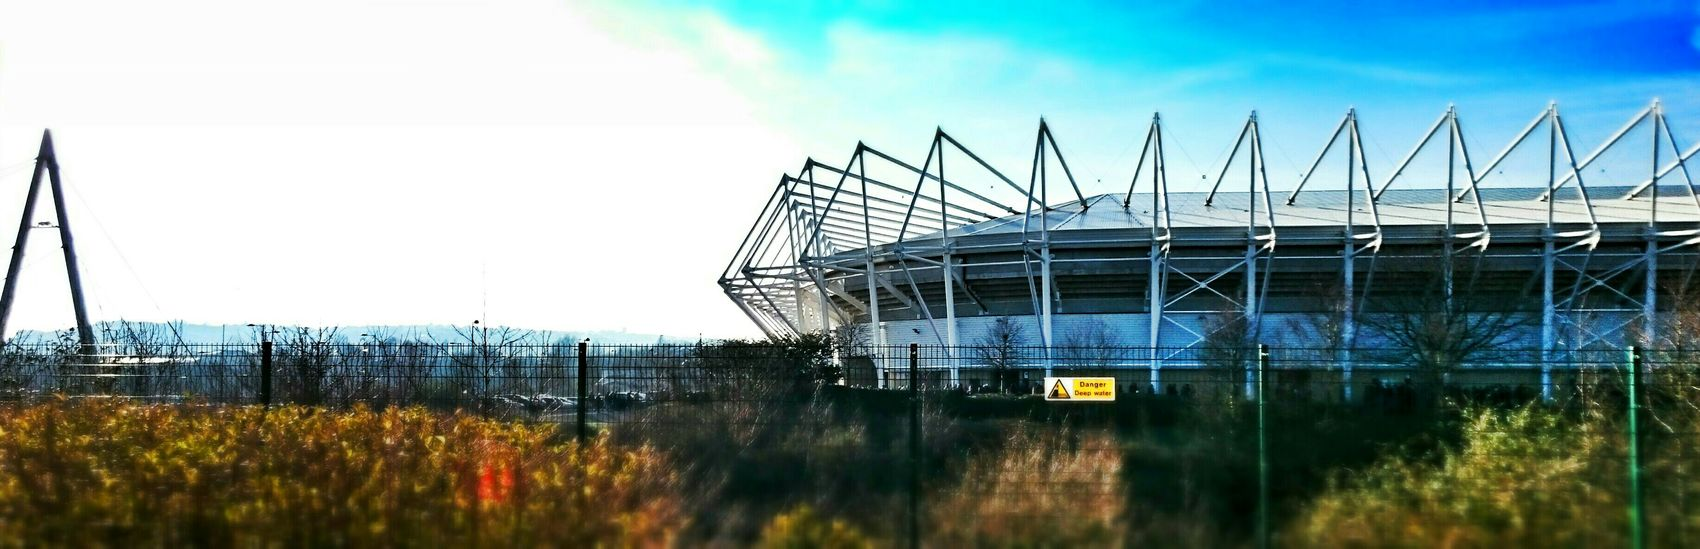 Cracking day for some football Swansea Football Football Stadium Jack Army